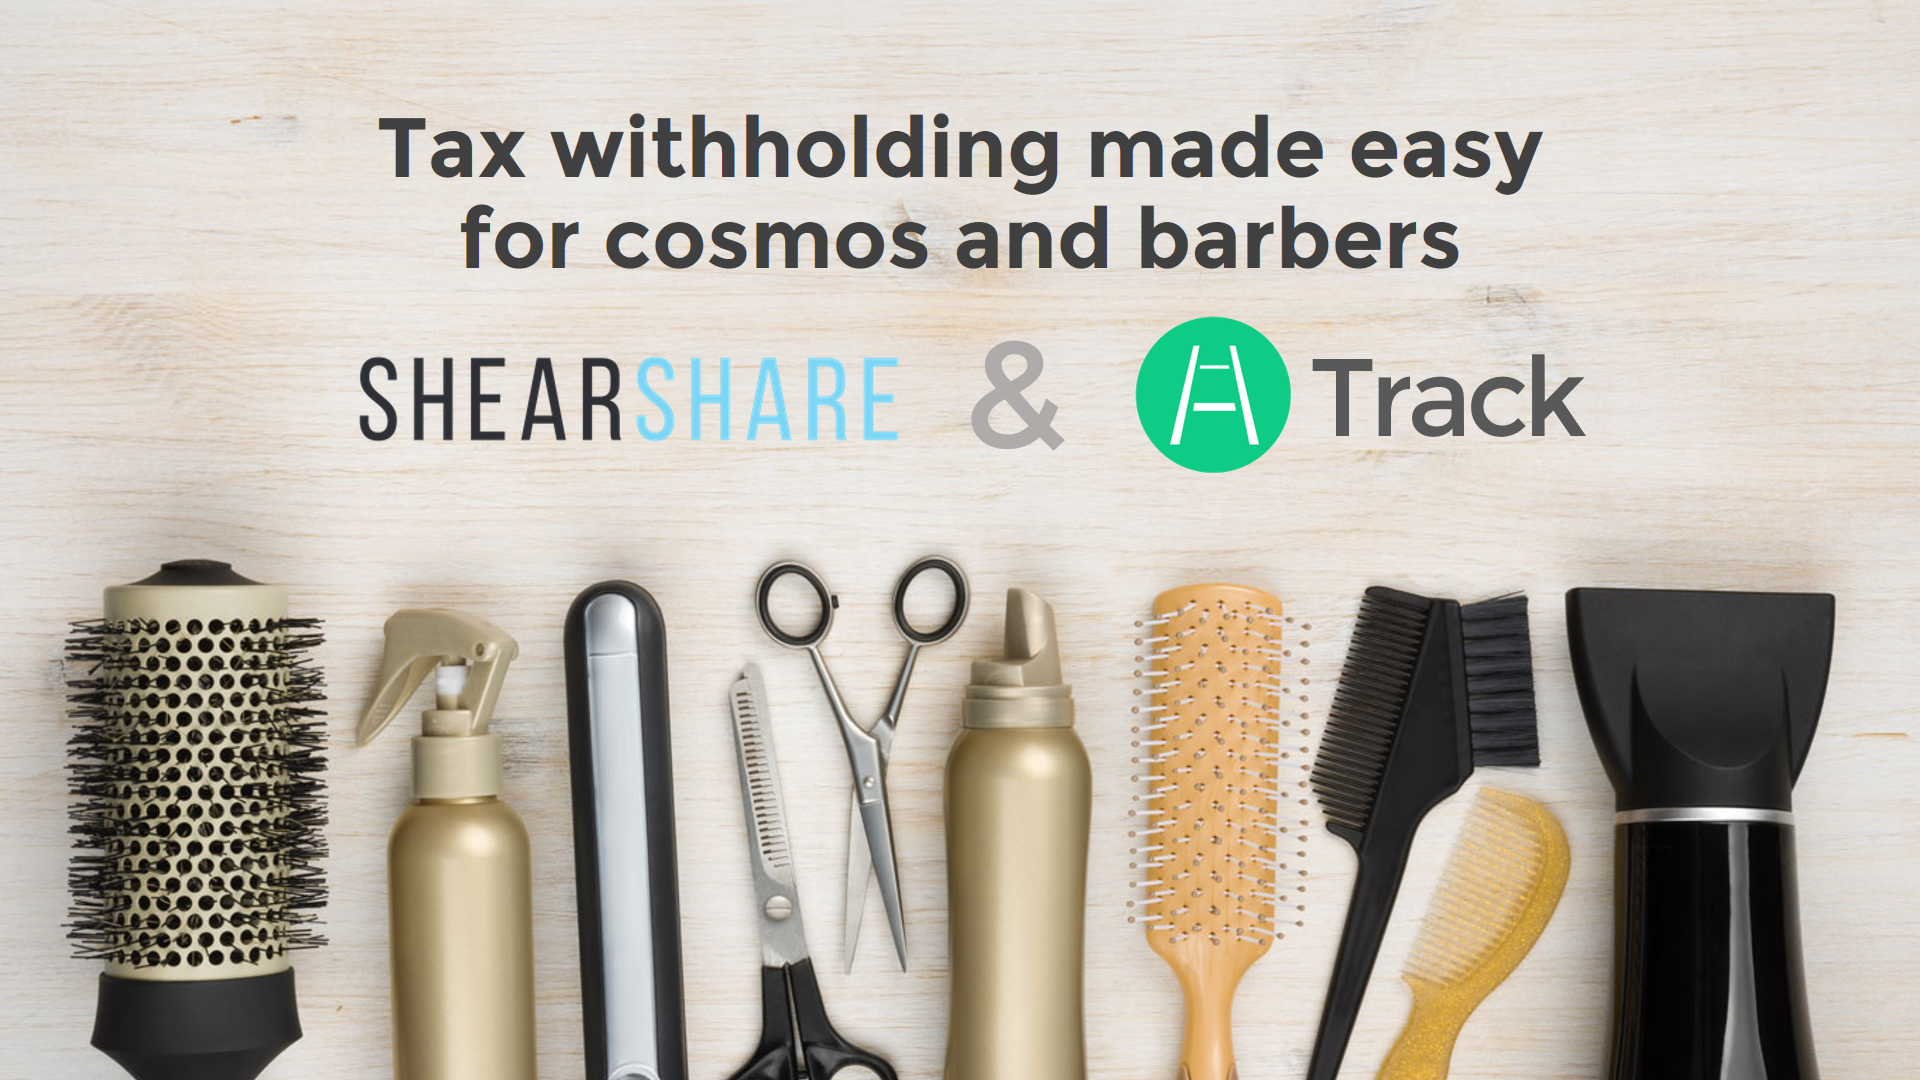 ShearShare New Partnership Simplifies the Financials for Solo Artists